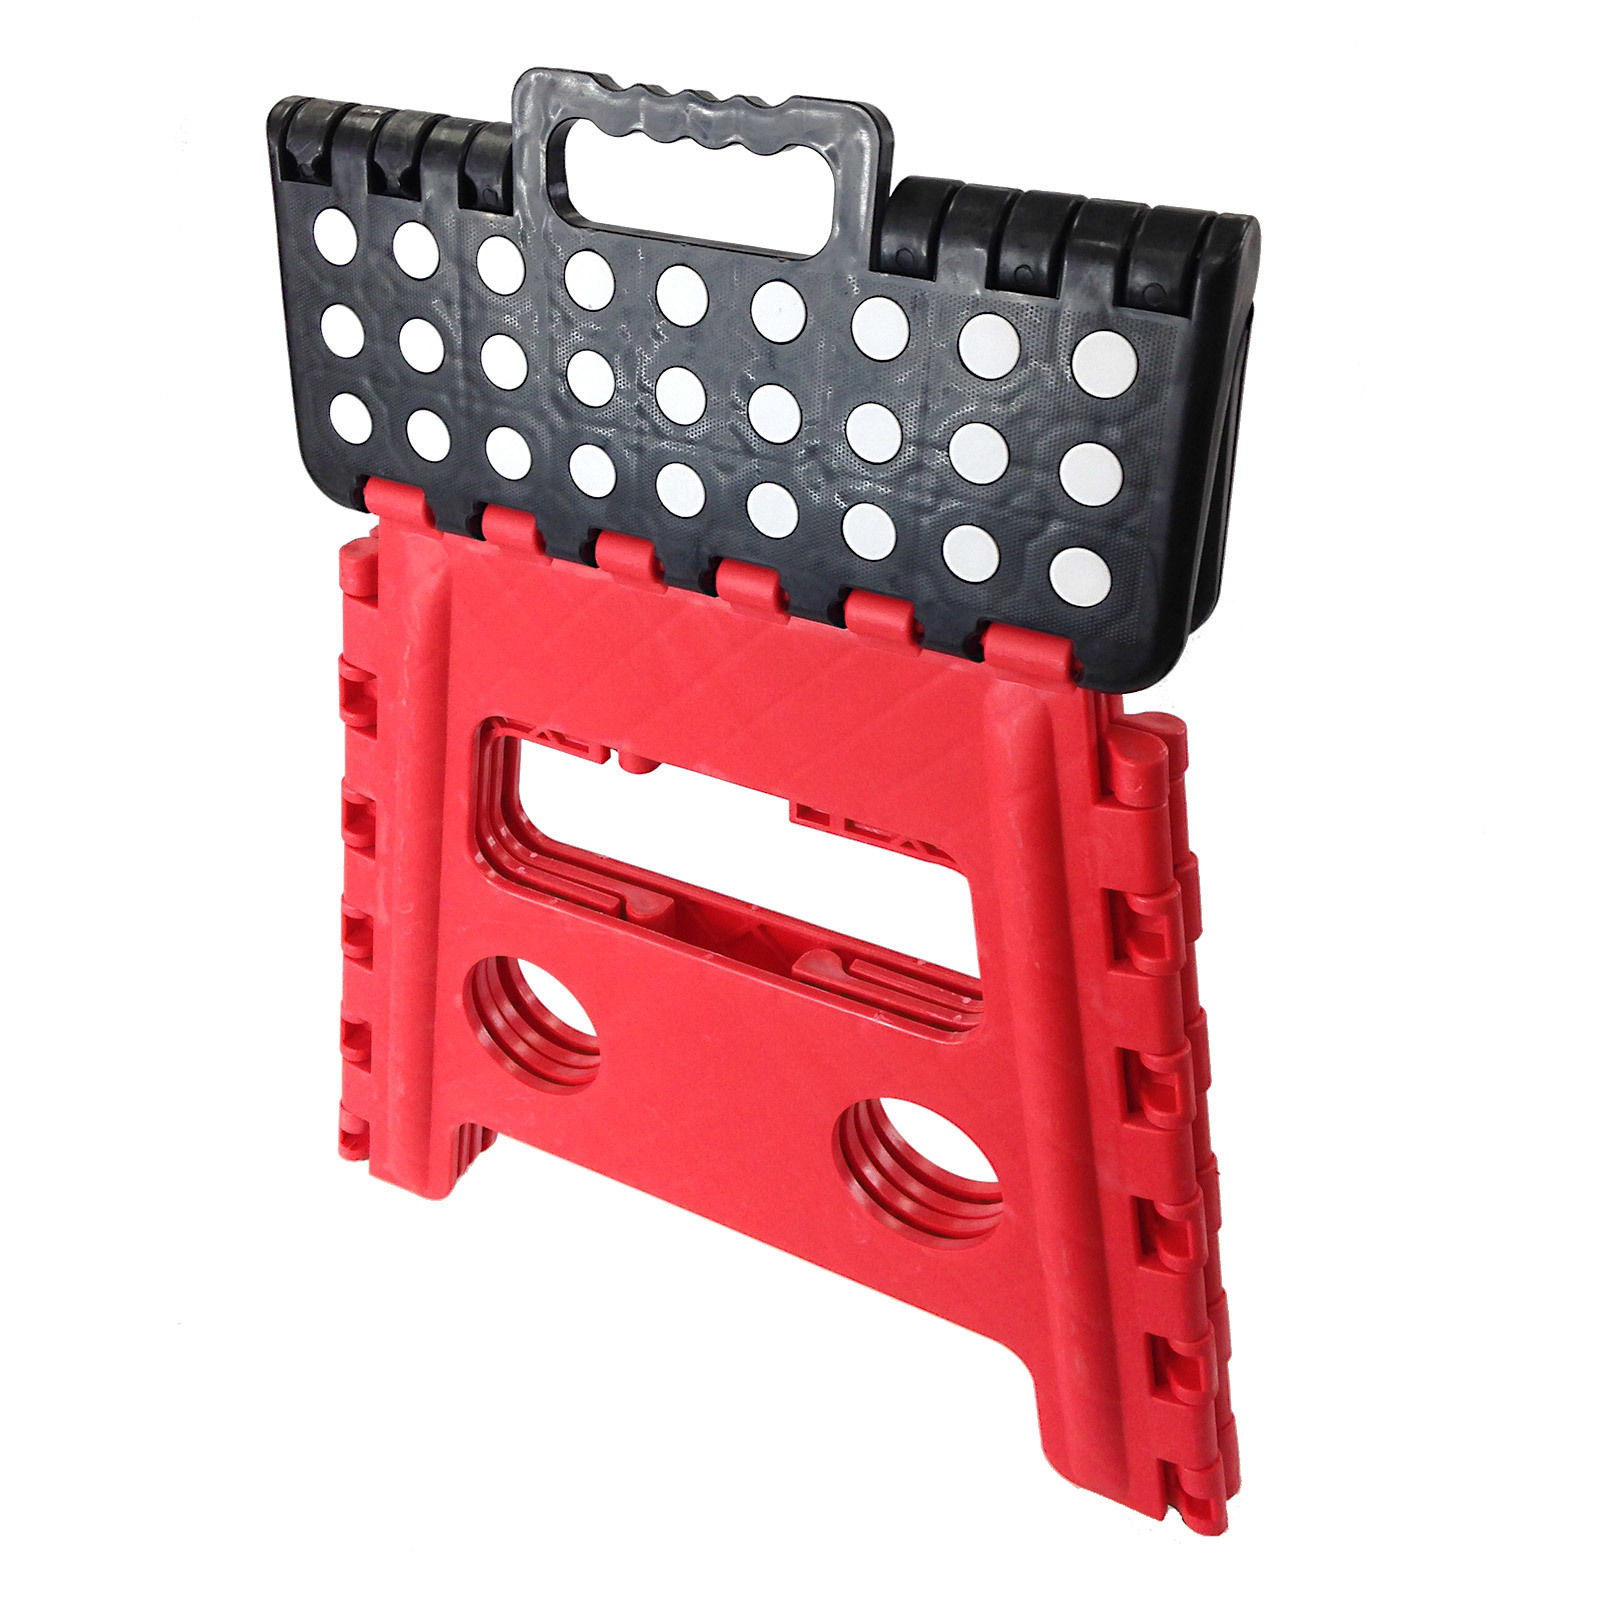 Easy Carry Folding Step Stool / Seat With Anti-Slip Surface Kids / Home - Red  sc 1 st  Easy Source Inc. & Folding Stool step chair climb closet high stand black cabinet ... islam-shia.org